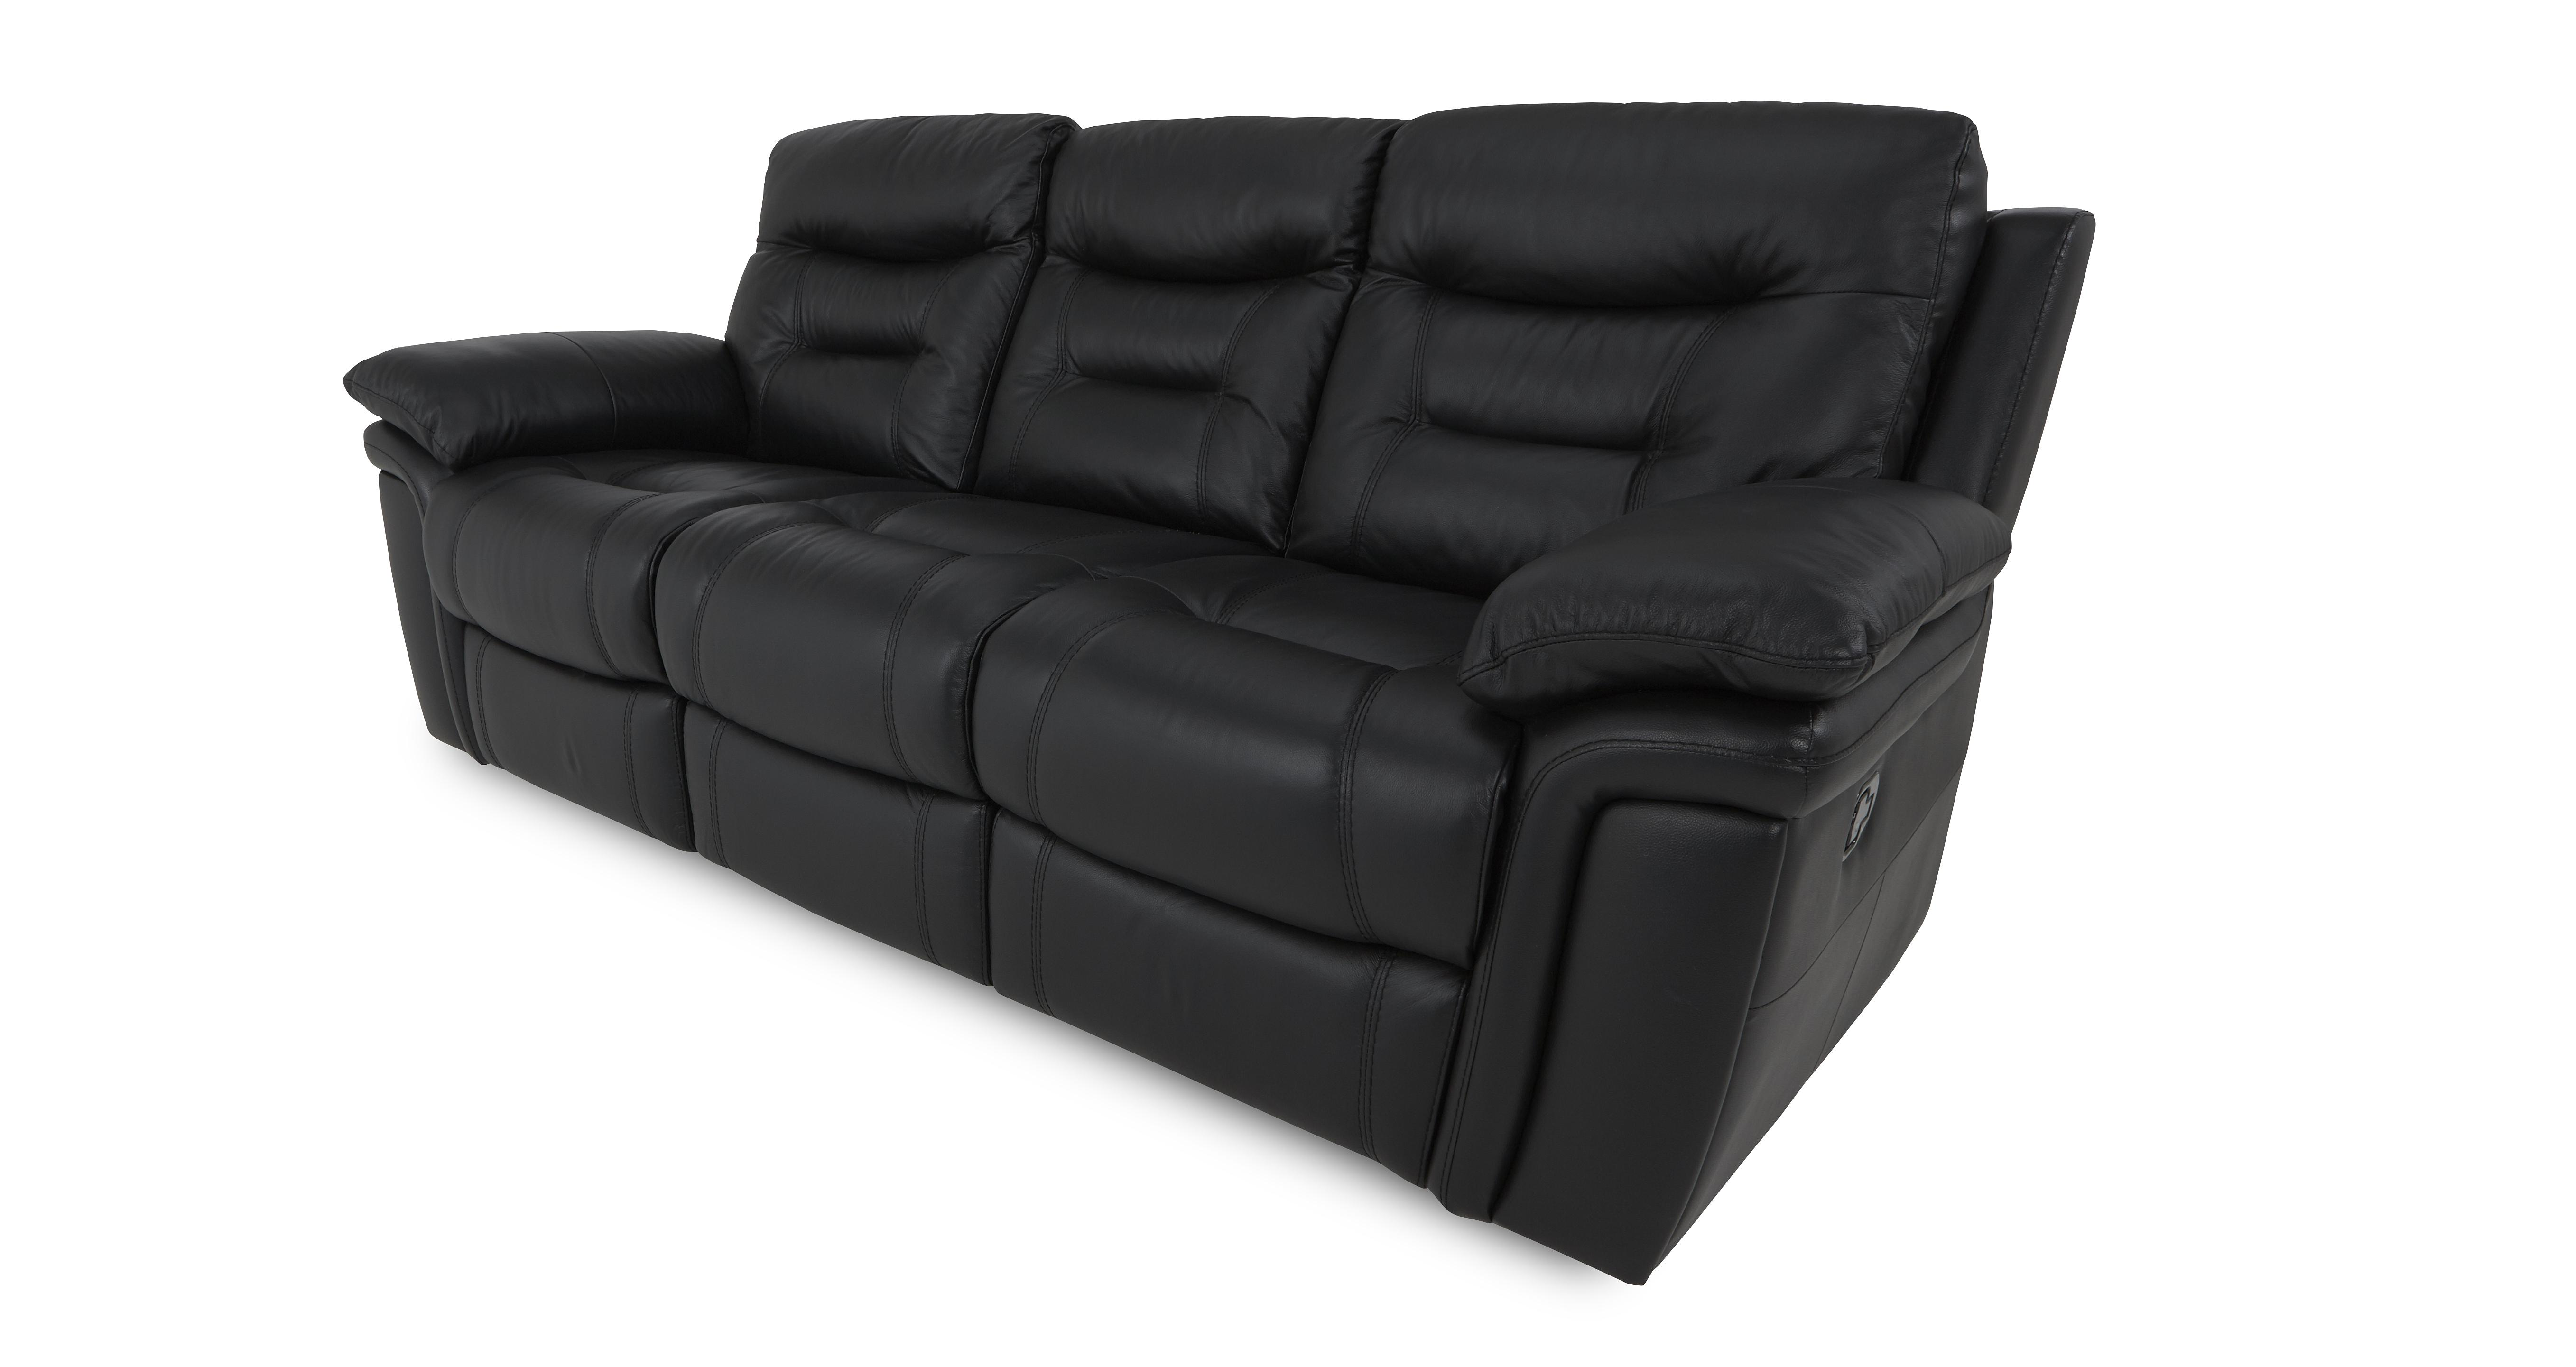 3 seater leather sofa dfs extra deep sectional evolution black manual recliner